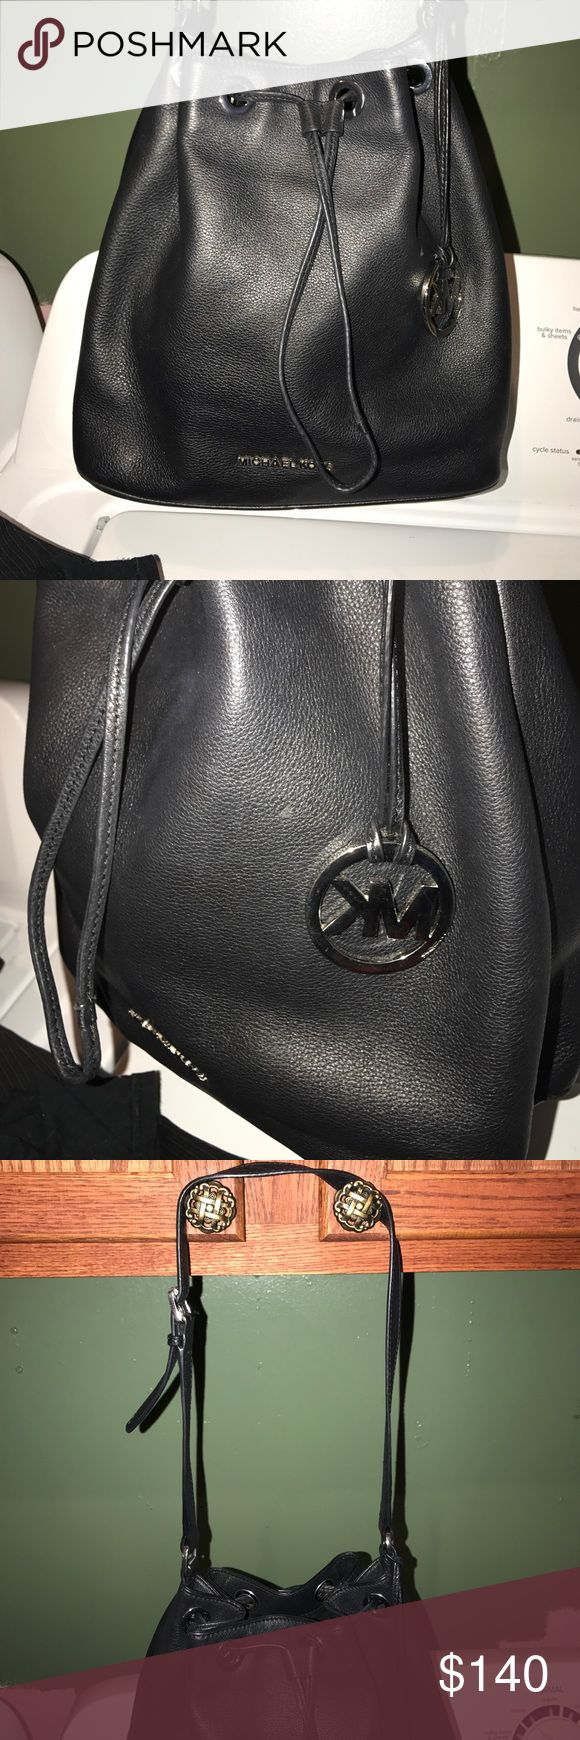 "Michael kors bucket purse Beautiful black bucket bag with silver hard ware a few minor marks one on front a couple small on bottom included pictures. Good sized strap drop 15"" adjustable Michael Kors Bags Shoulder Bags"